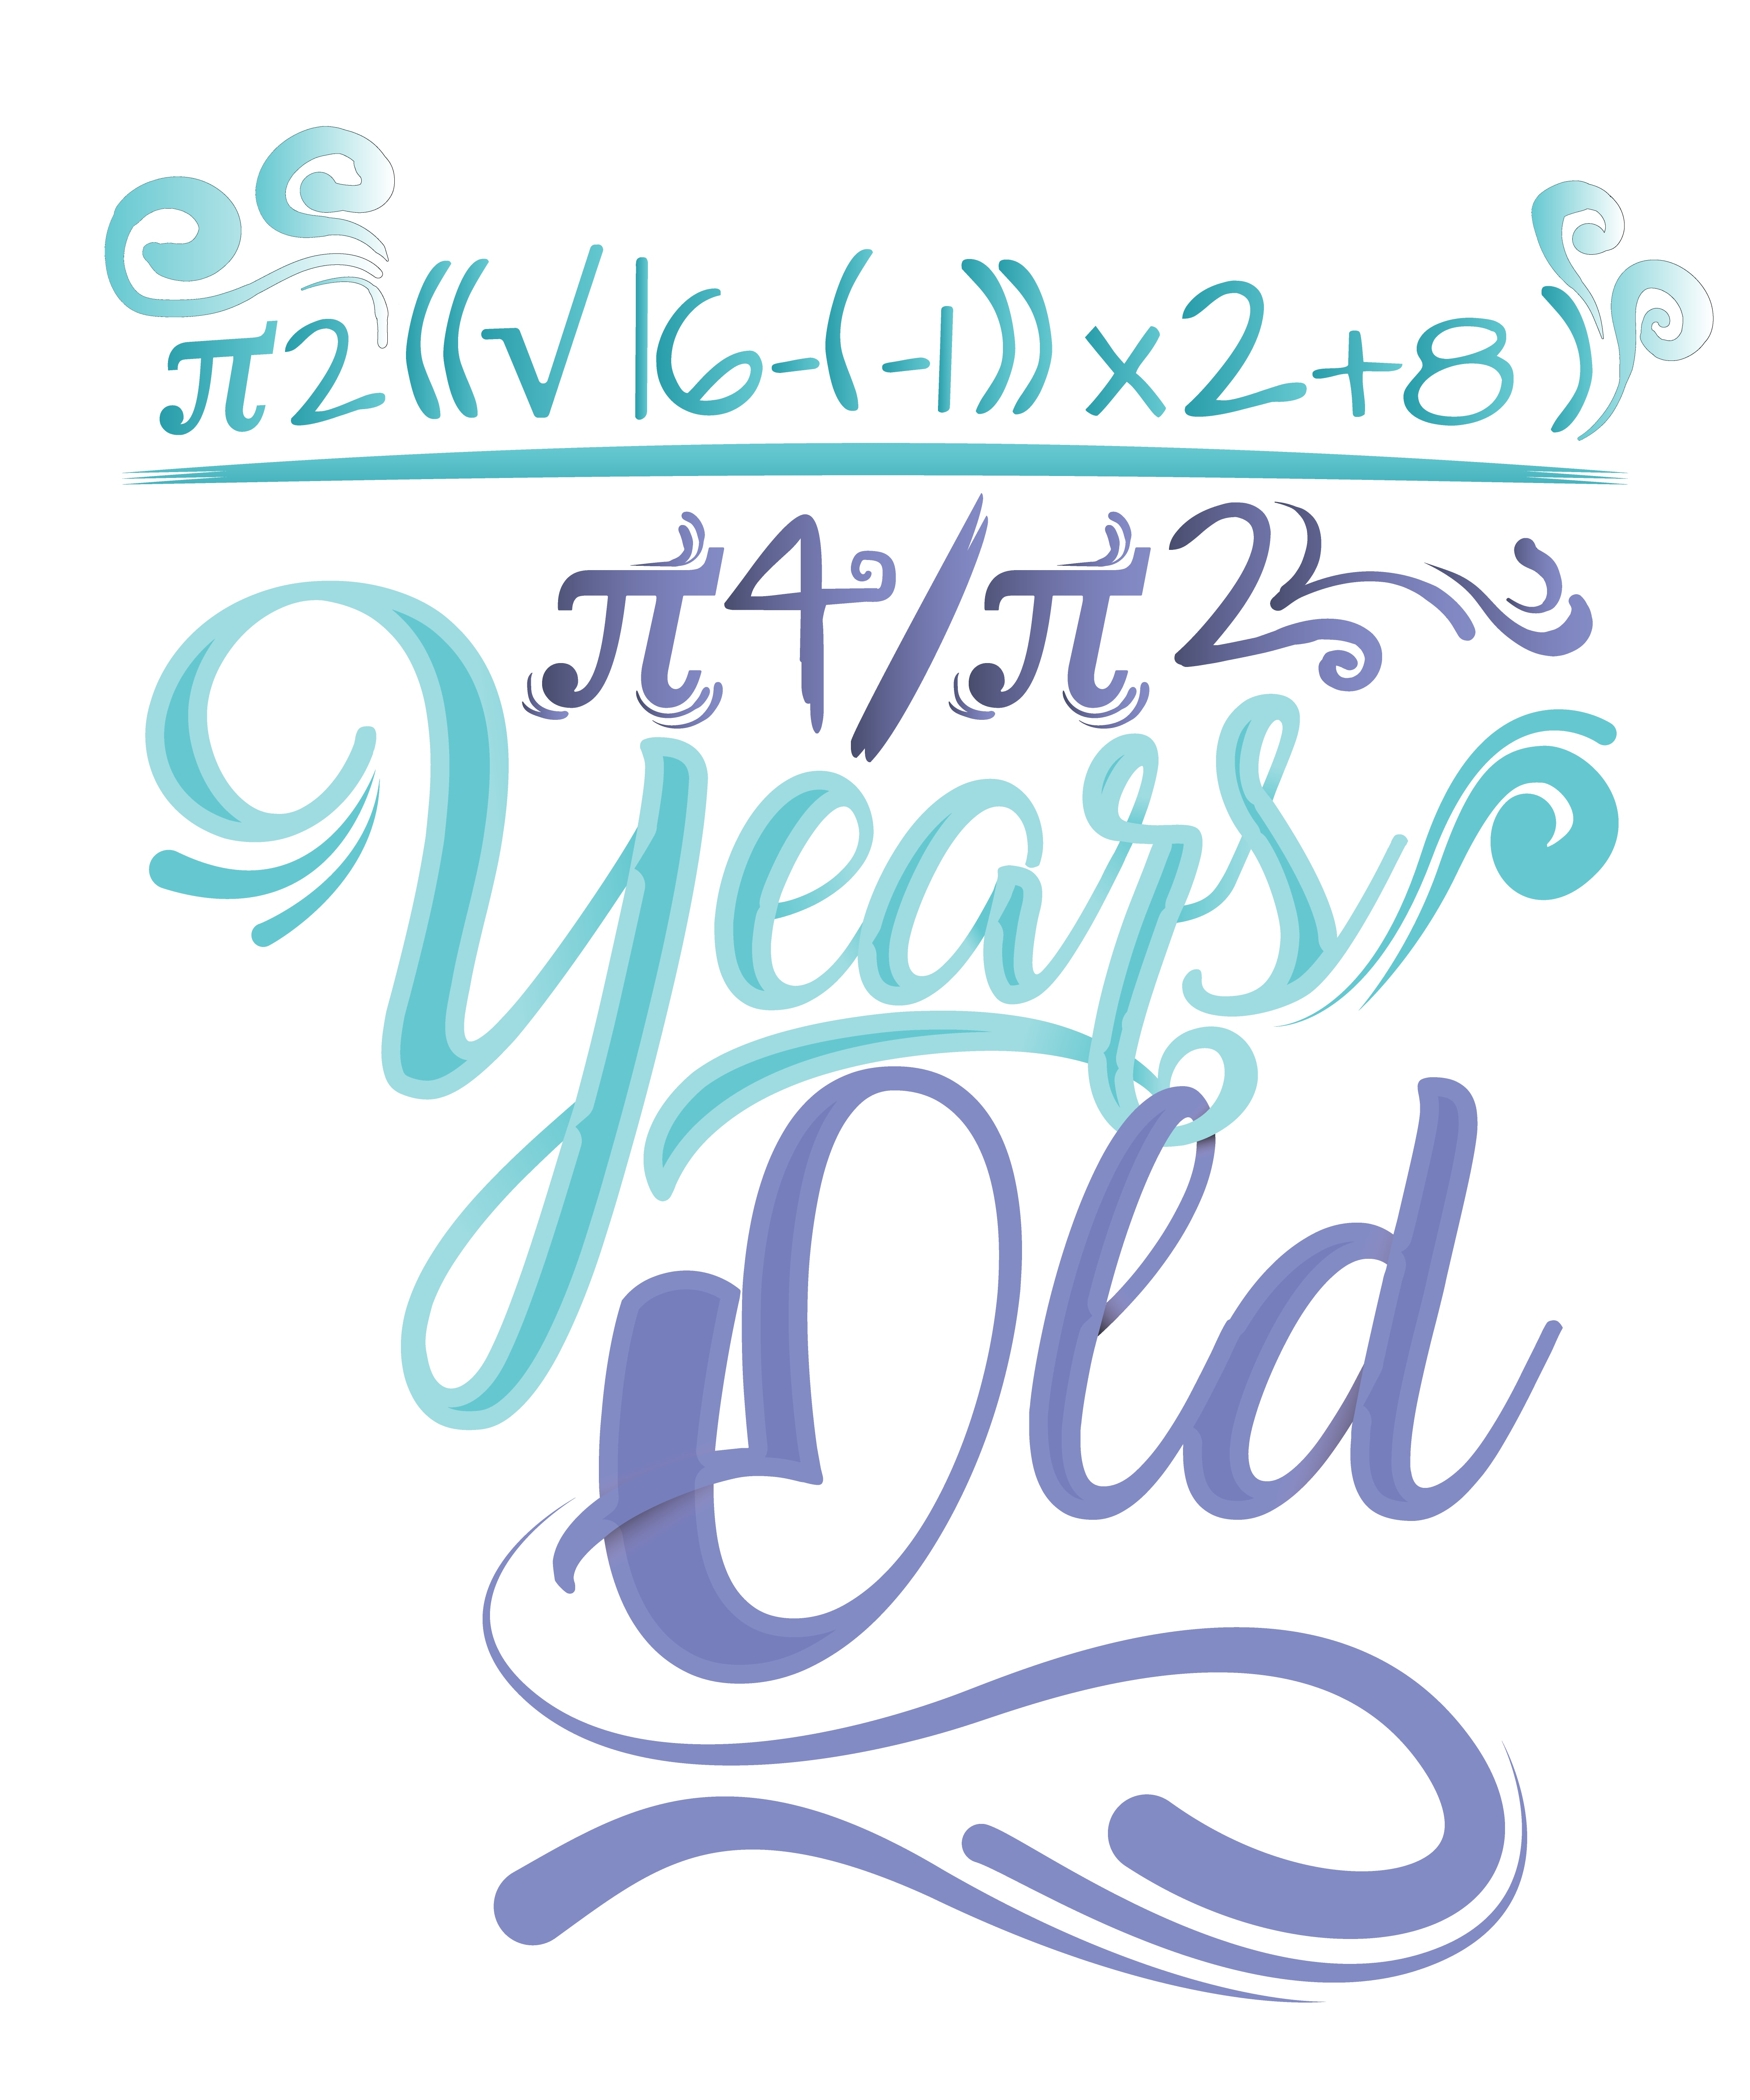 18 Years Old Algebra Equation Gift Ideas on Storenvy